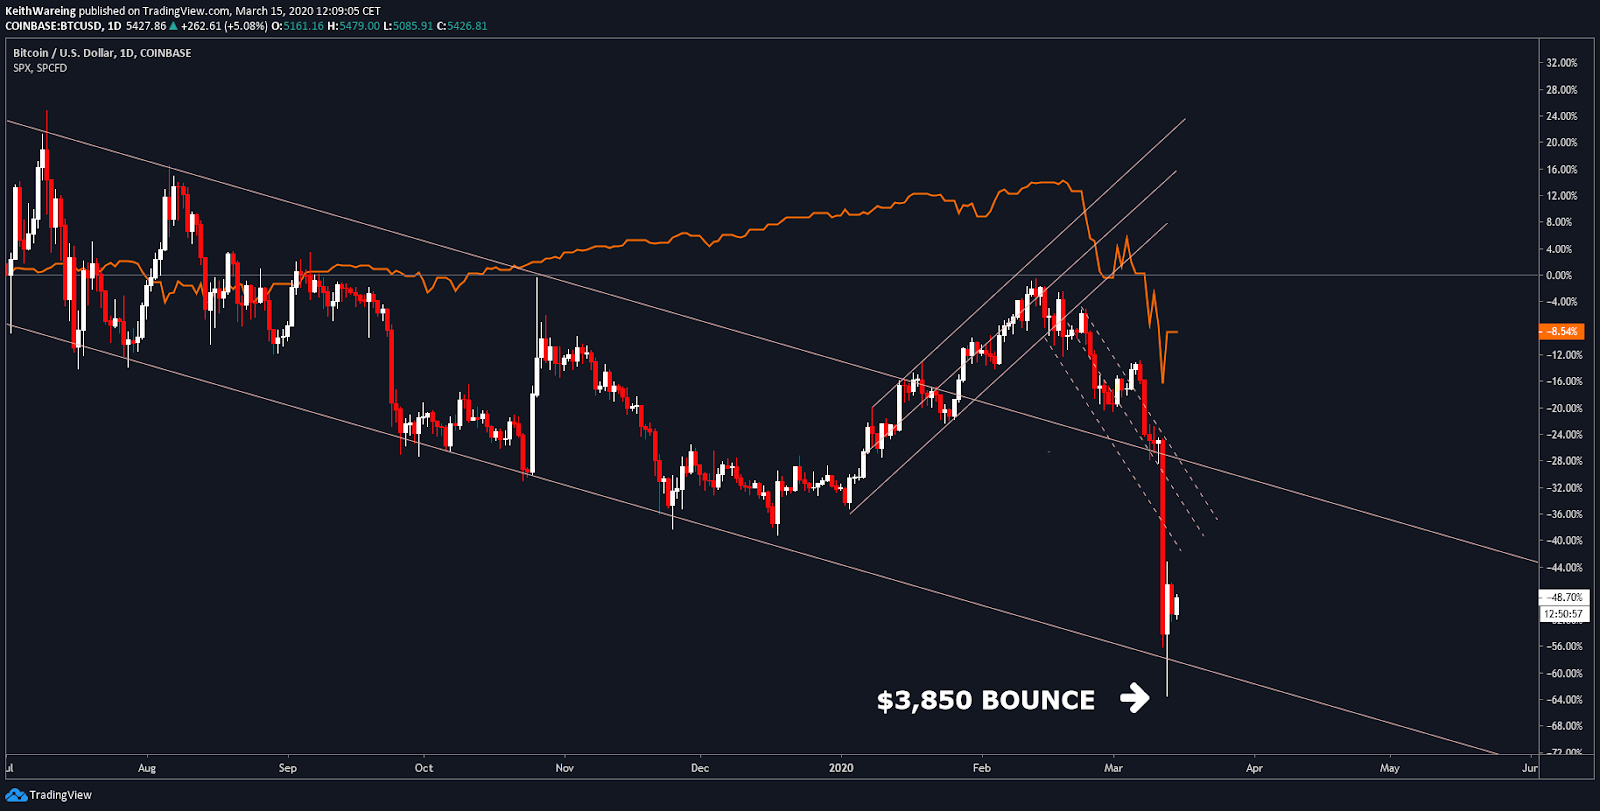 BTC USD/ S&P 500 Daily Source: TradingView